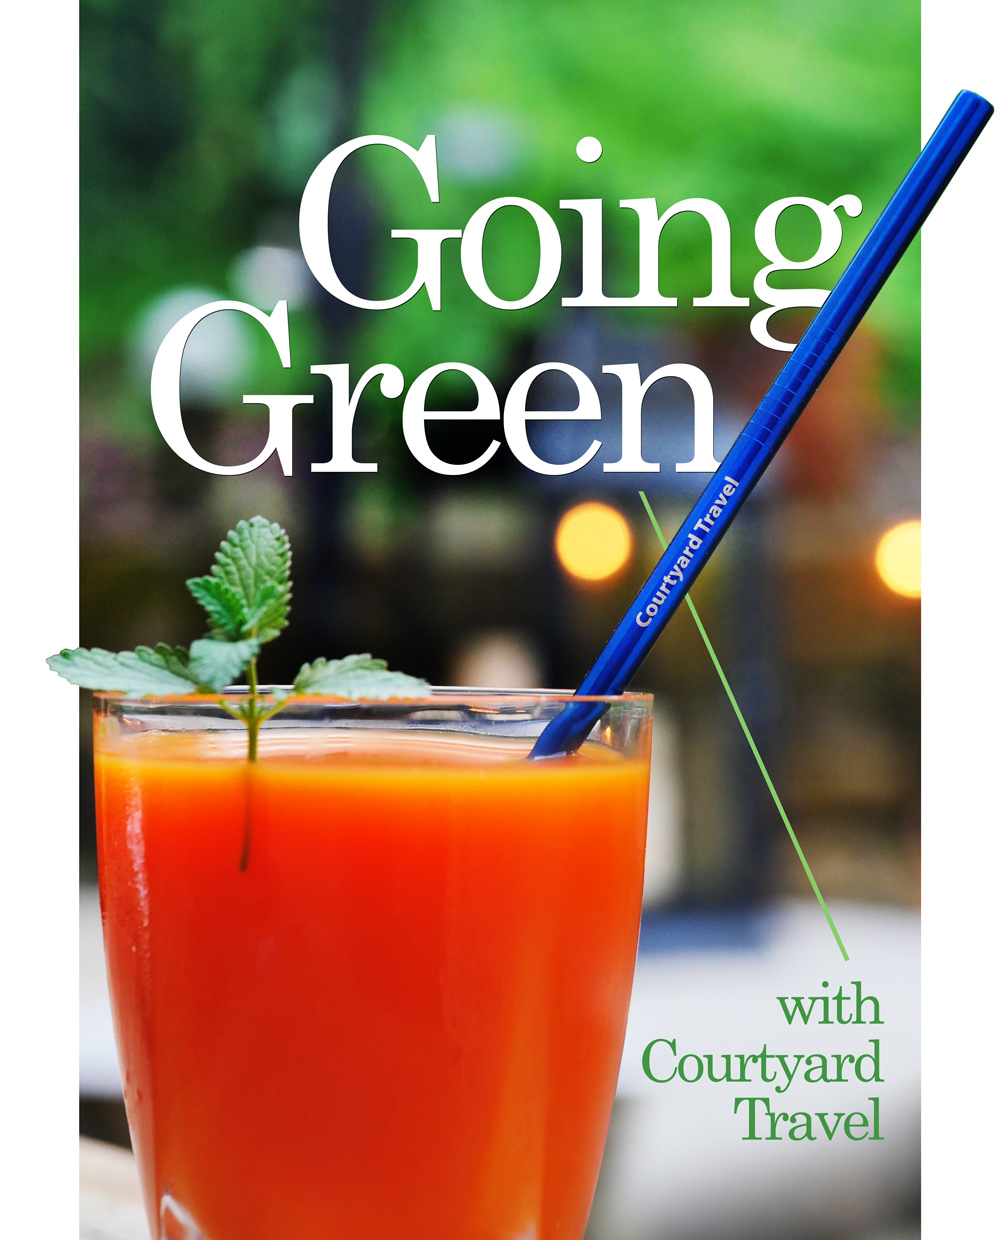 Going Green at Courtyard Travel